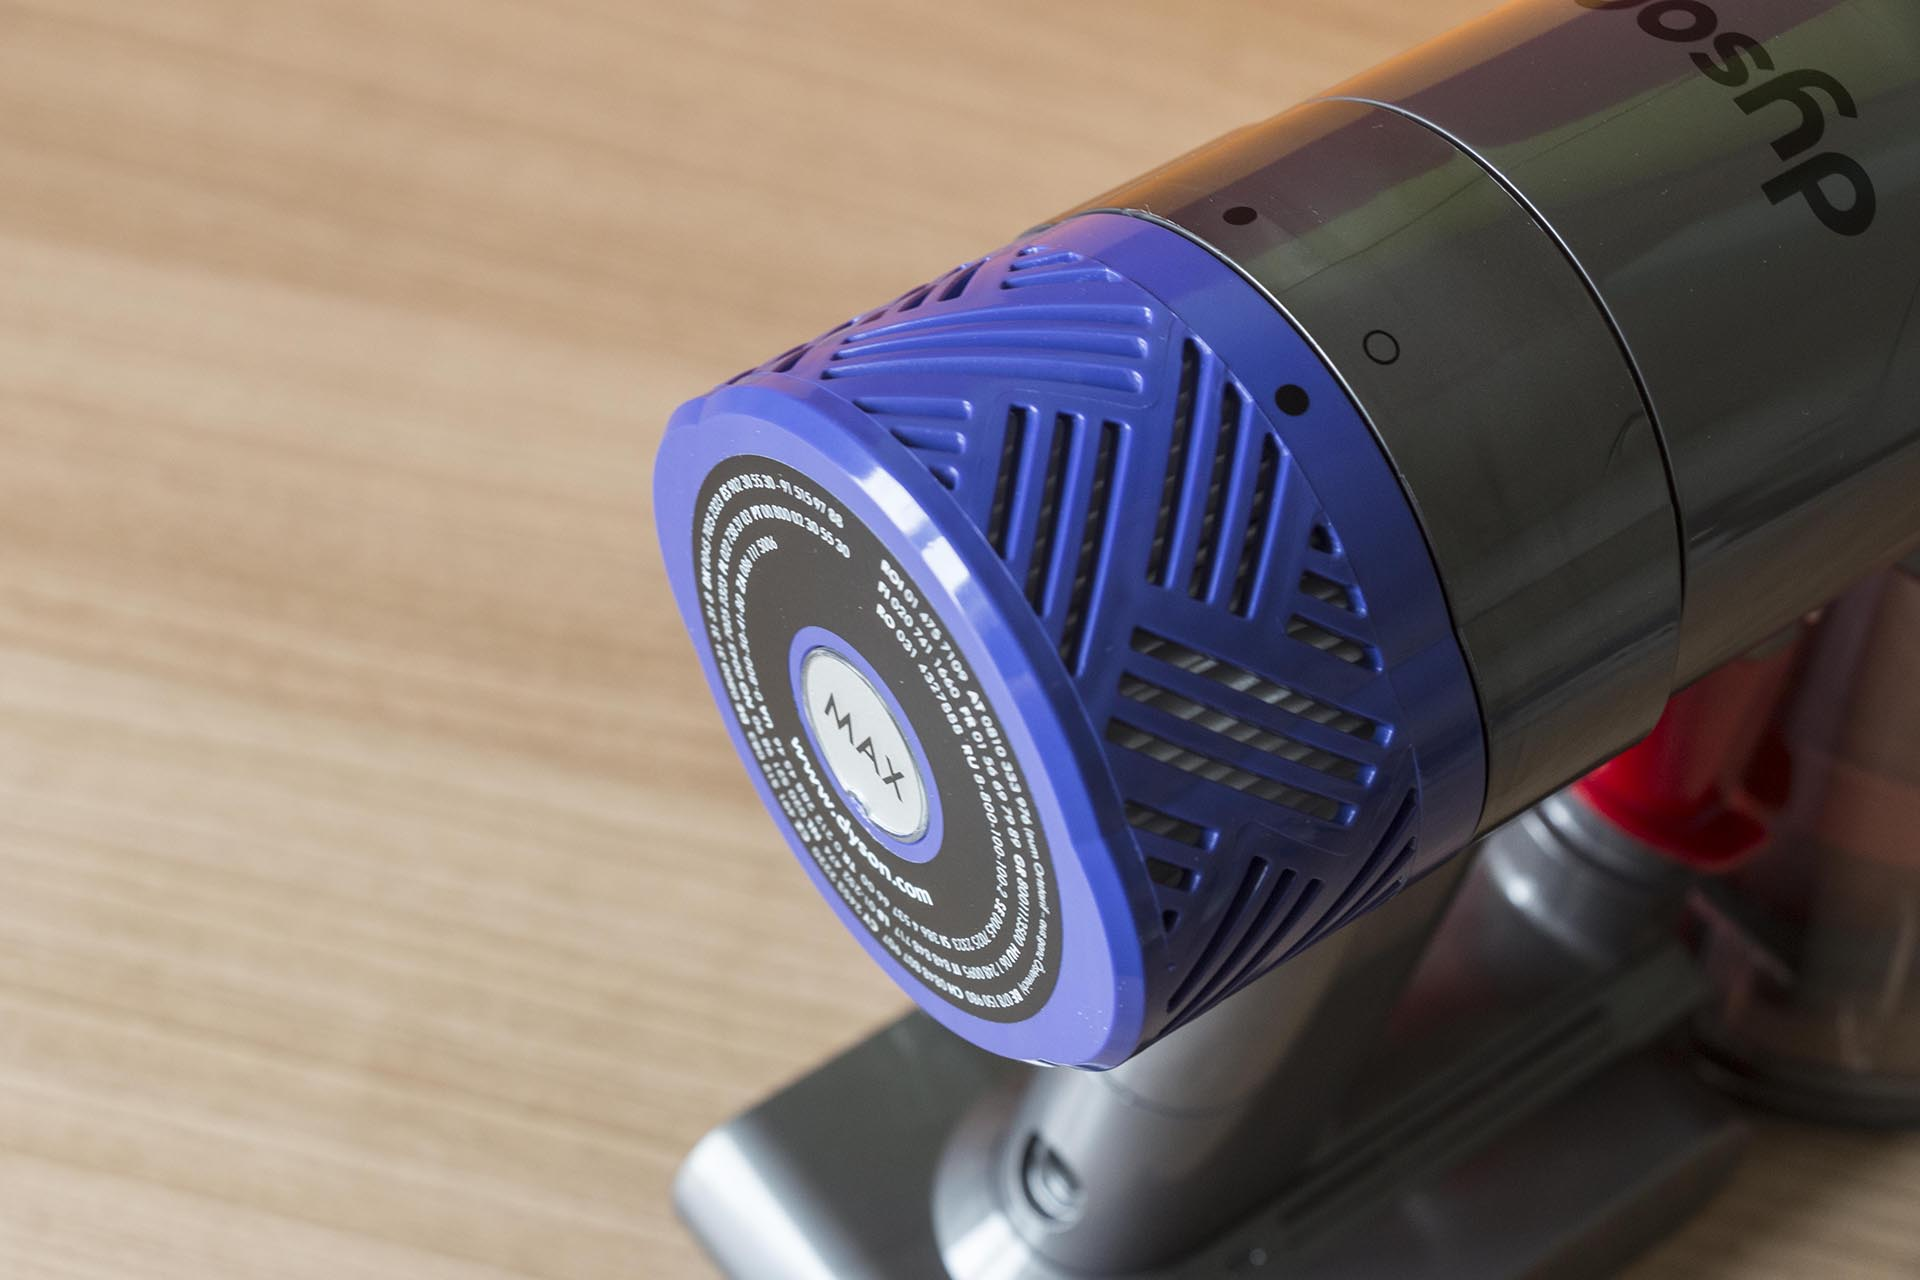 dyson v6 slim how to clean filter